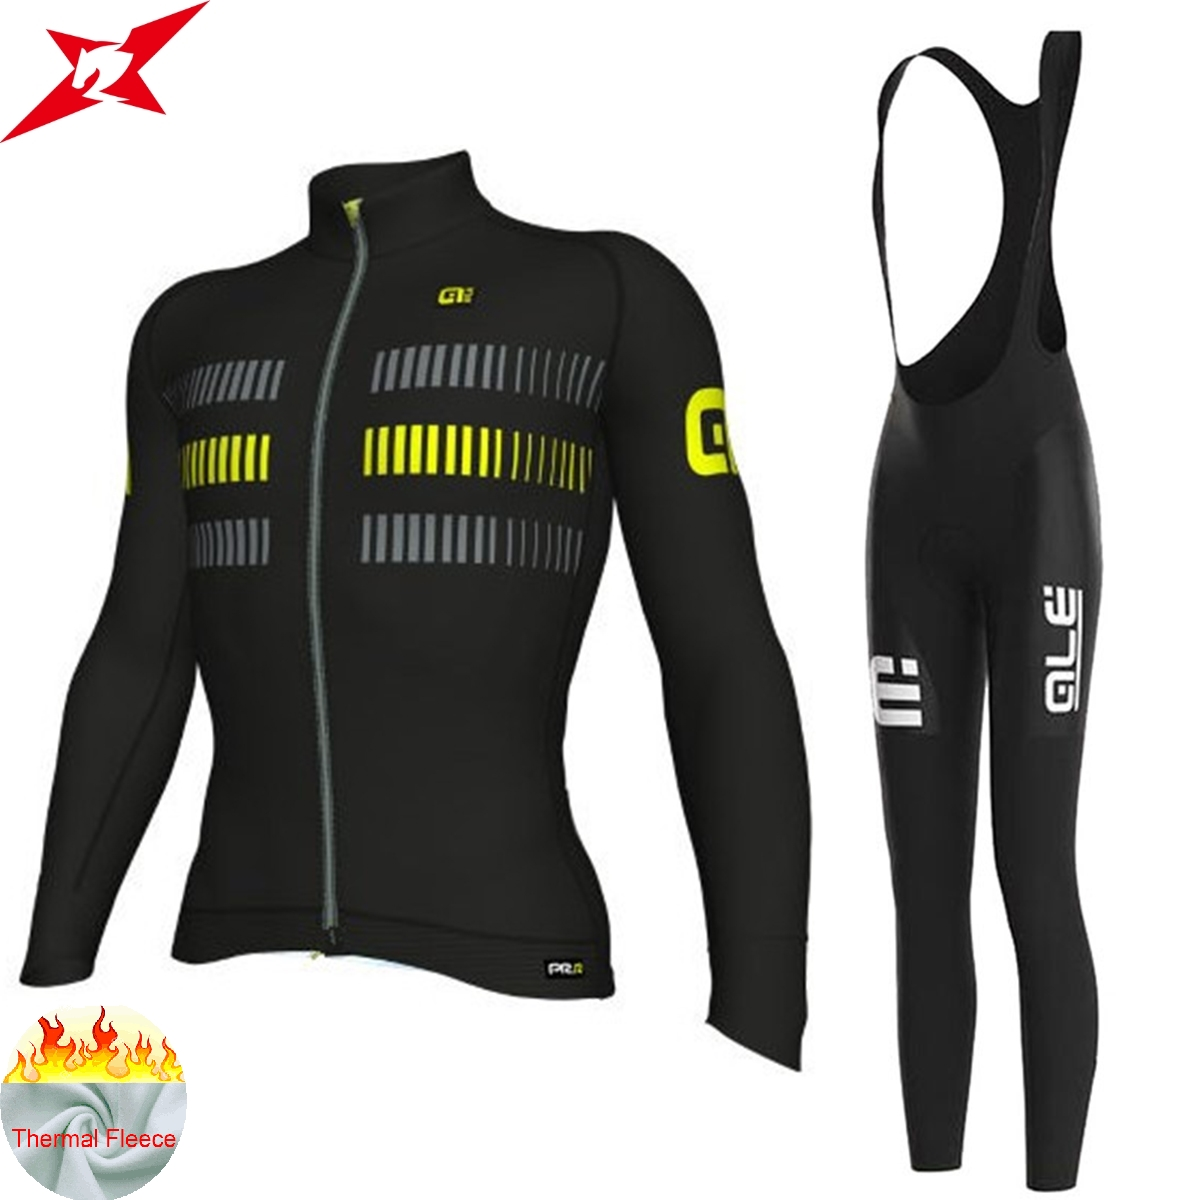 2017 ALE New Style Long Sleeve winter Cycling Clothing Bib Set Men Bike Clothes Ropa Maillot Ciclismo with 9D Gel Pad #609 2017 mavic maillot ciclismo zebra pattern men personality long sleeve cycling breathable bike bicycle clothes polyester s 6xl